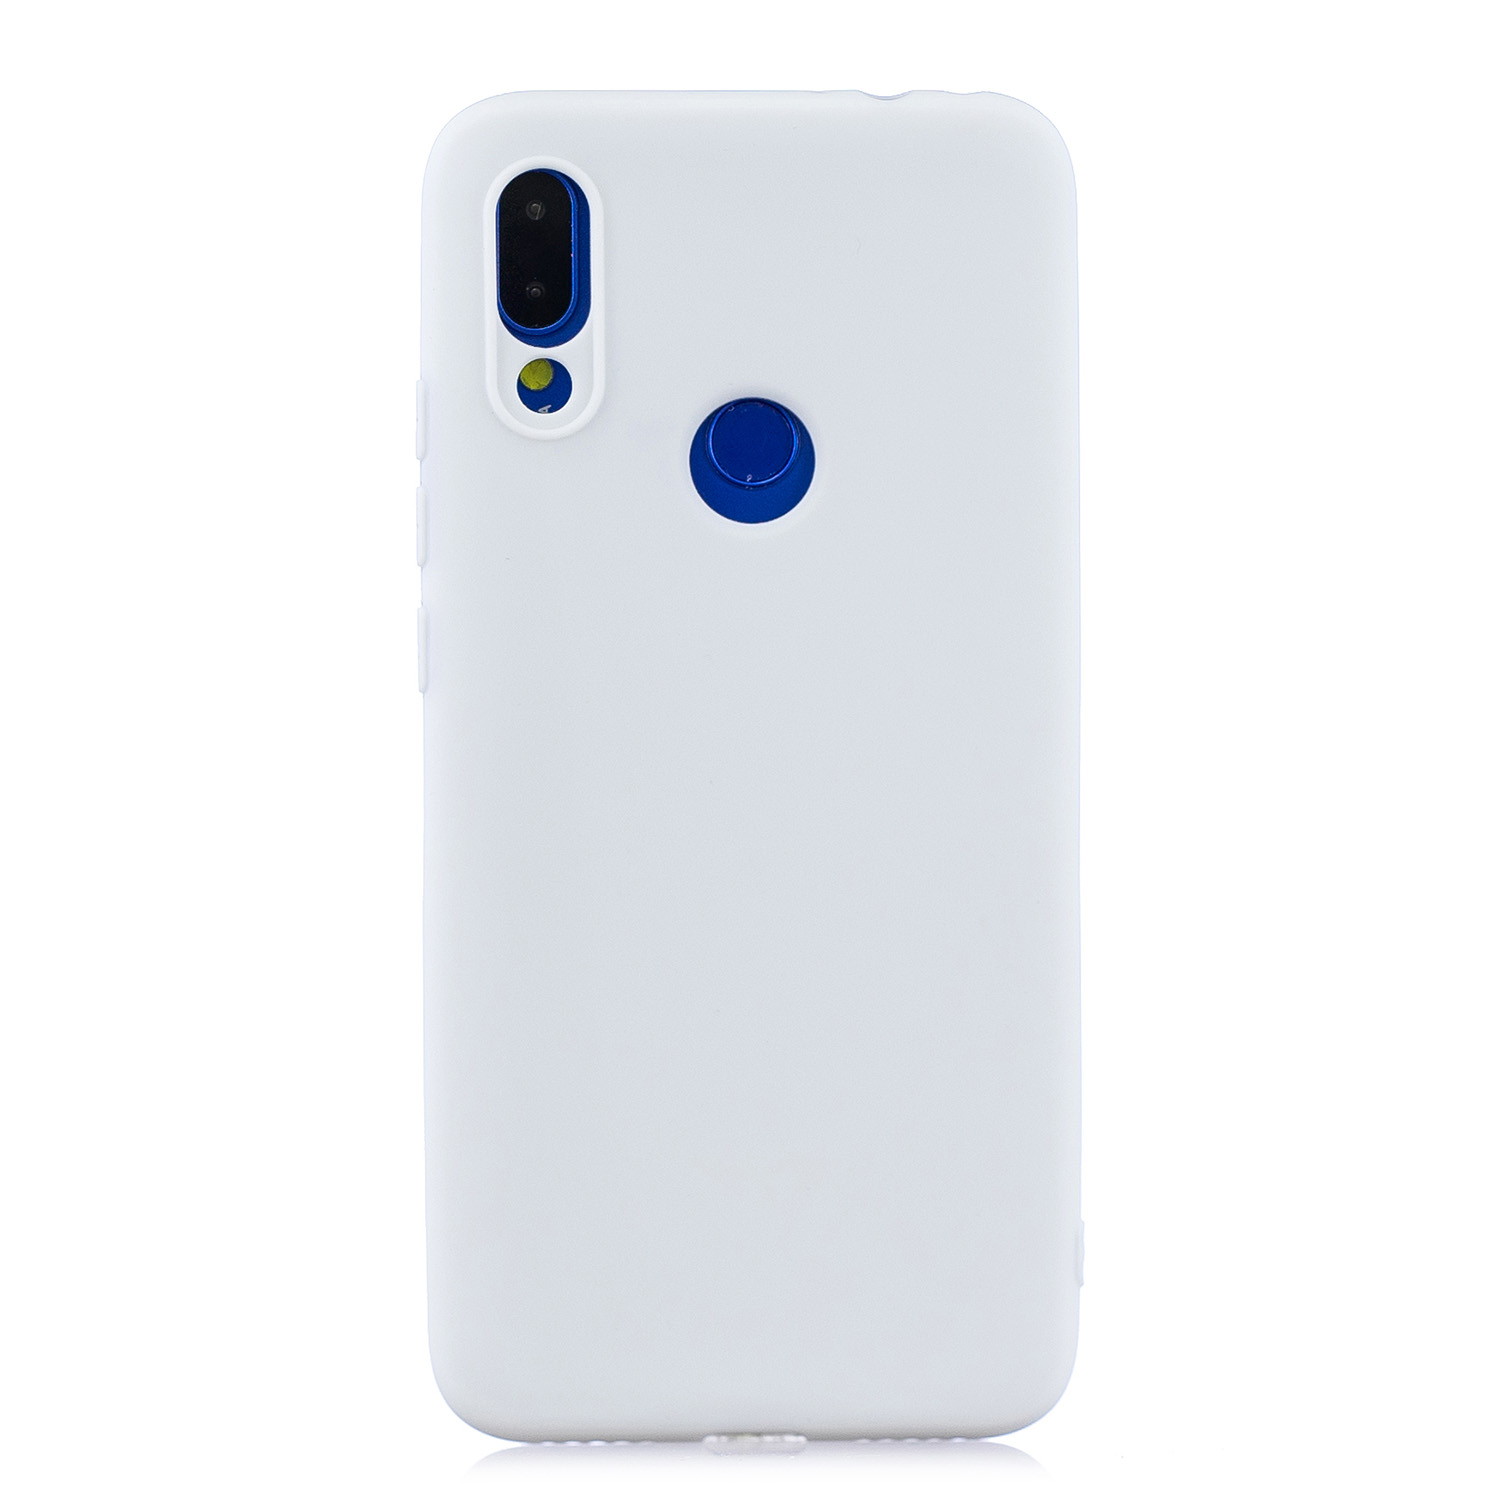 For Redmi 7 Lovely Candy Color Matte TPU Anti-scratch Non-slip Protective Cover Back Case white